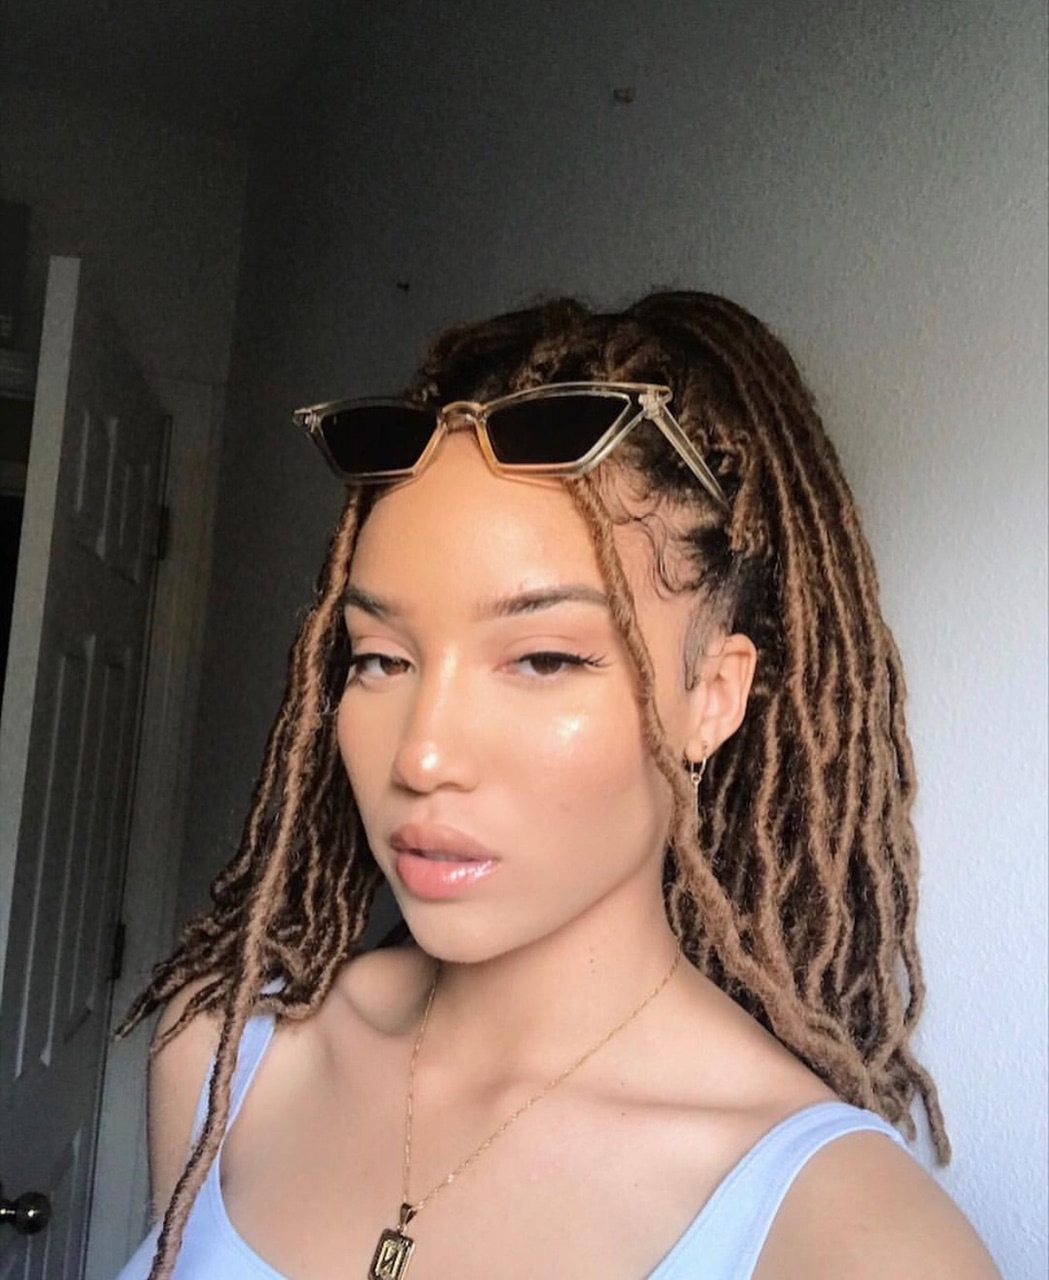 clear skin, braids, sunglasses and lipgloss